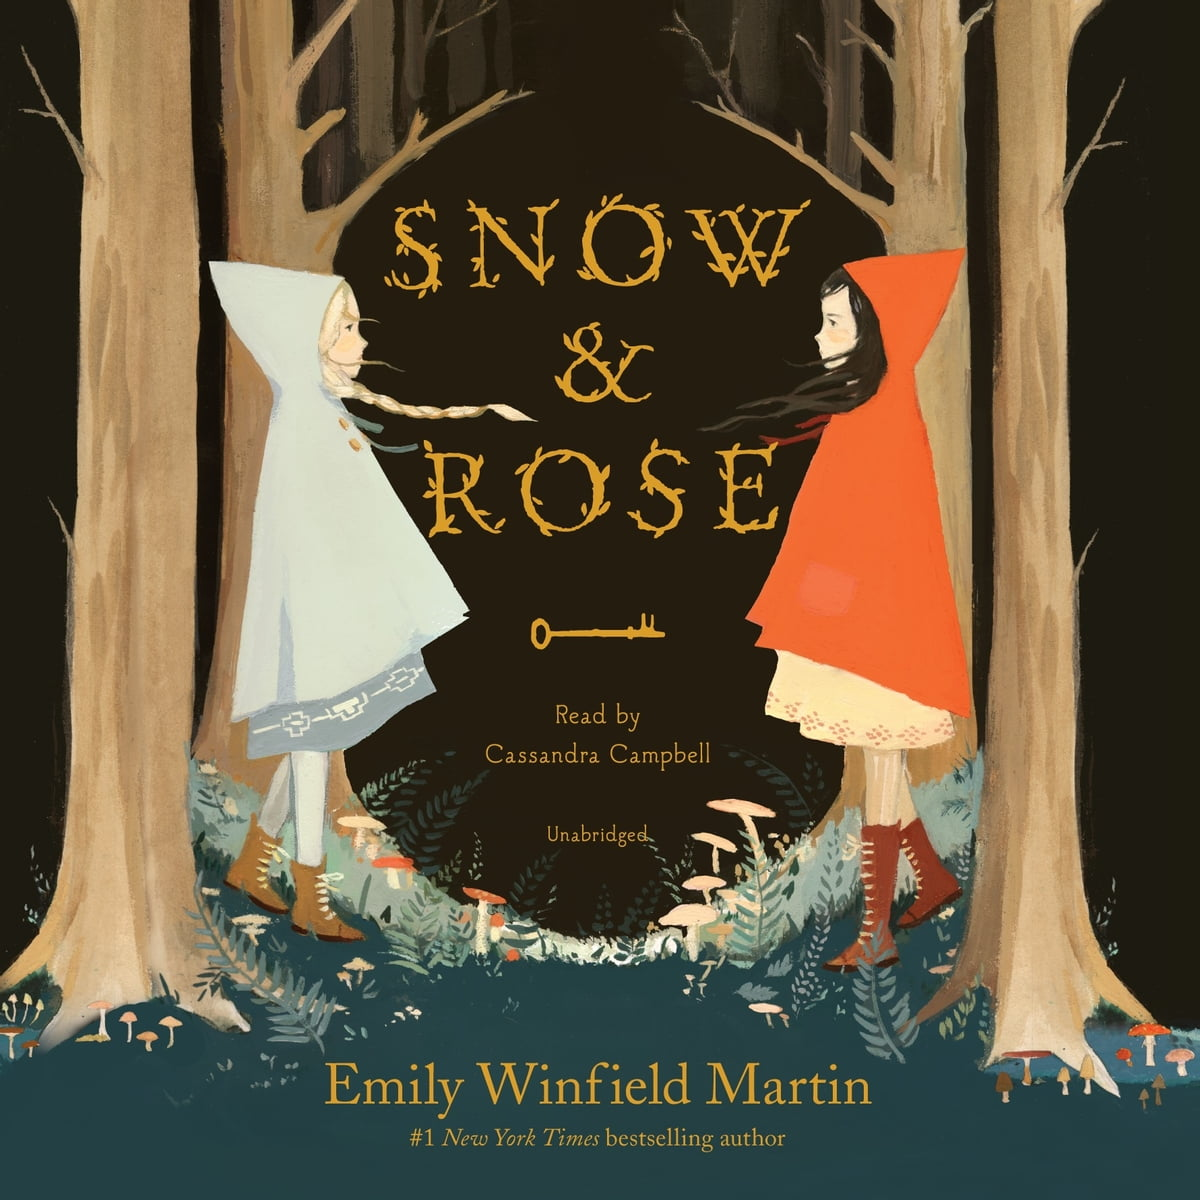 a rose for emily movie vs book A rose for emily full movie ashti abdulhamid loading a rose for emily by william faulkner minute book reports 20,108 views.